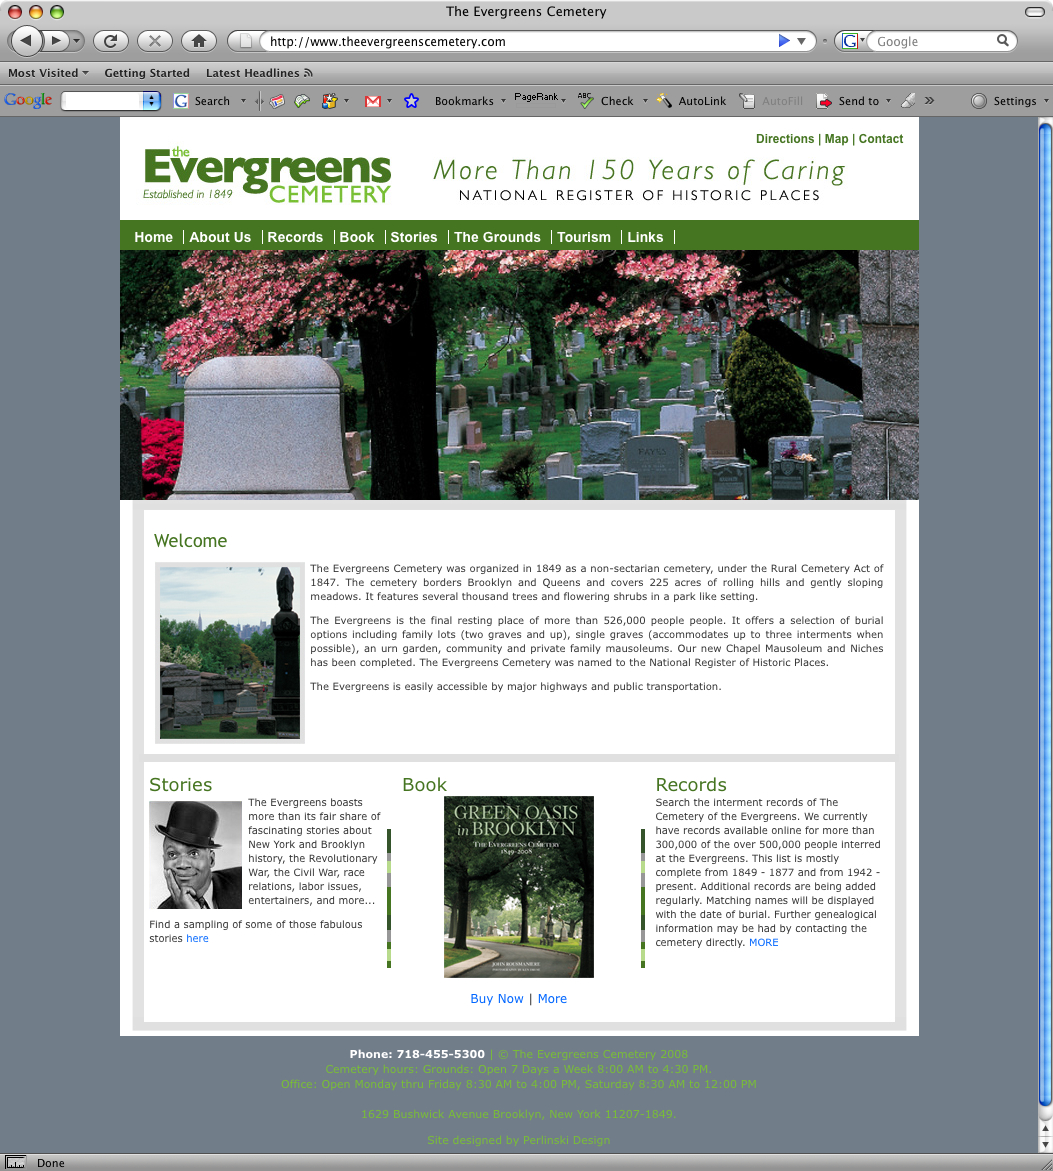 New Jersey Website Design - The Evergreens Cemetery